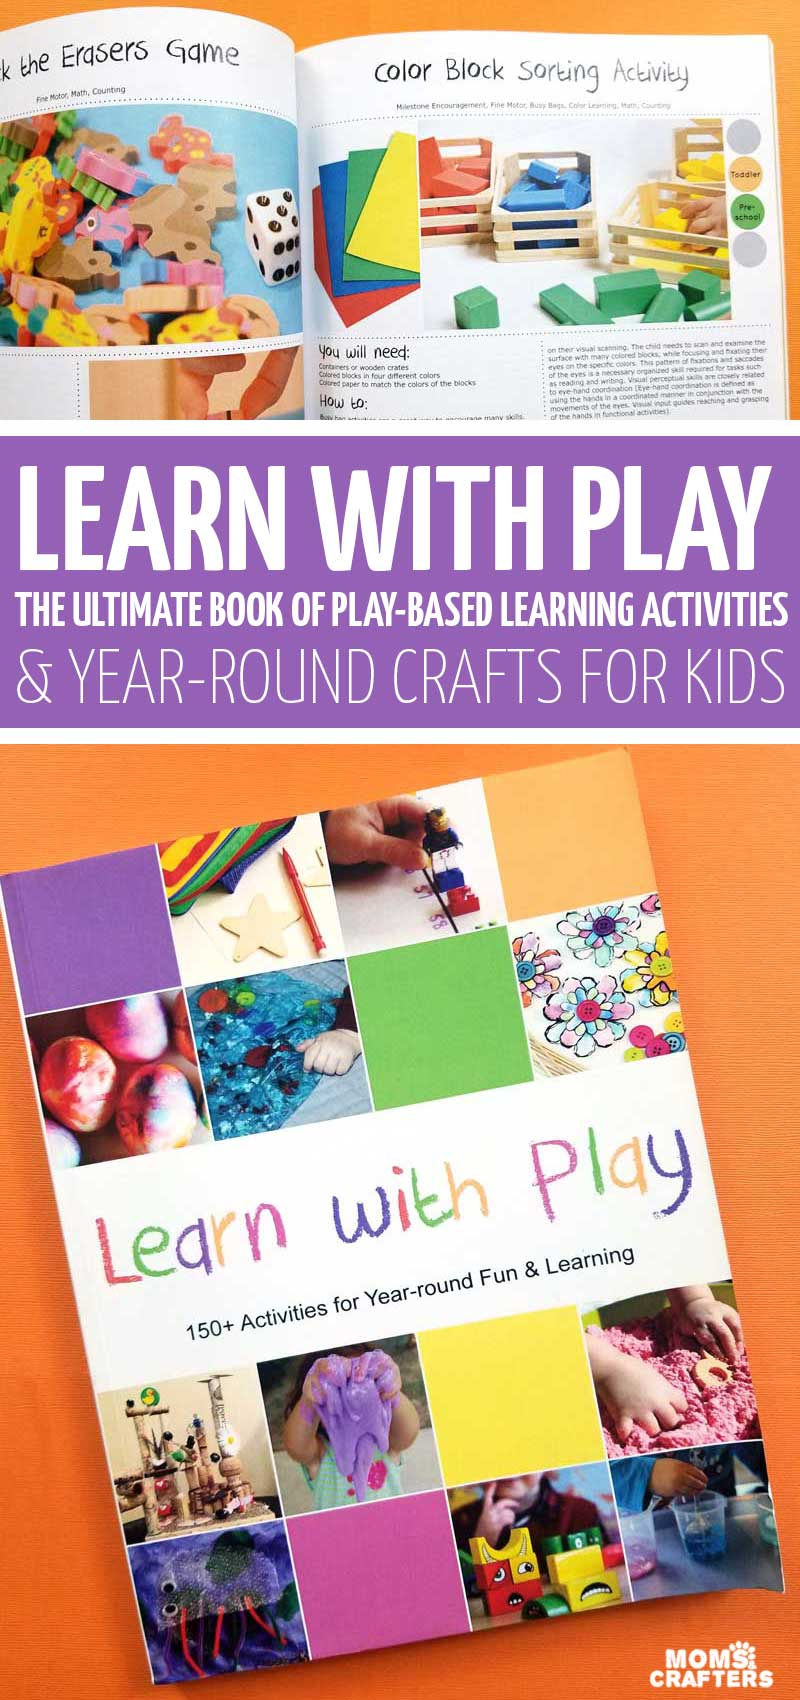 Click to learn more about this amazing, ginormous kids activities book full of fun ideas for learning with play including homeschooling, sensory play, toddler activities, preschool crafts, science, and more boredom busters and educational ideas.